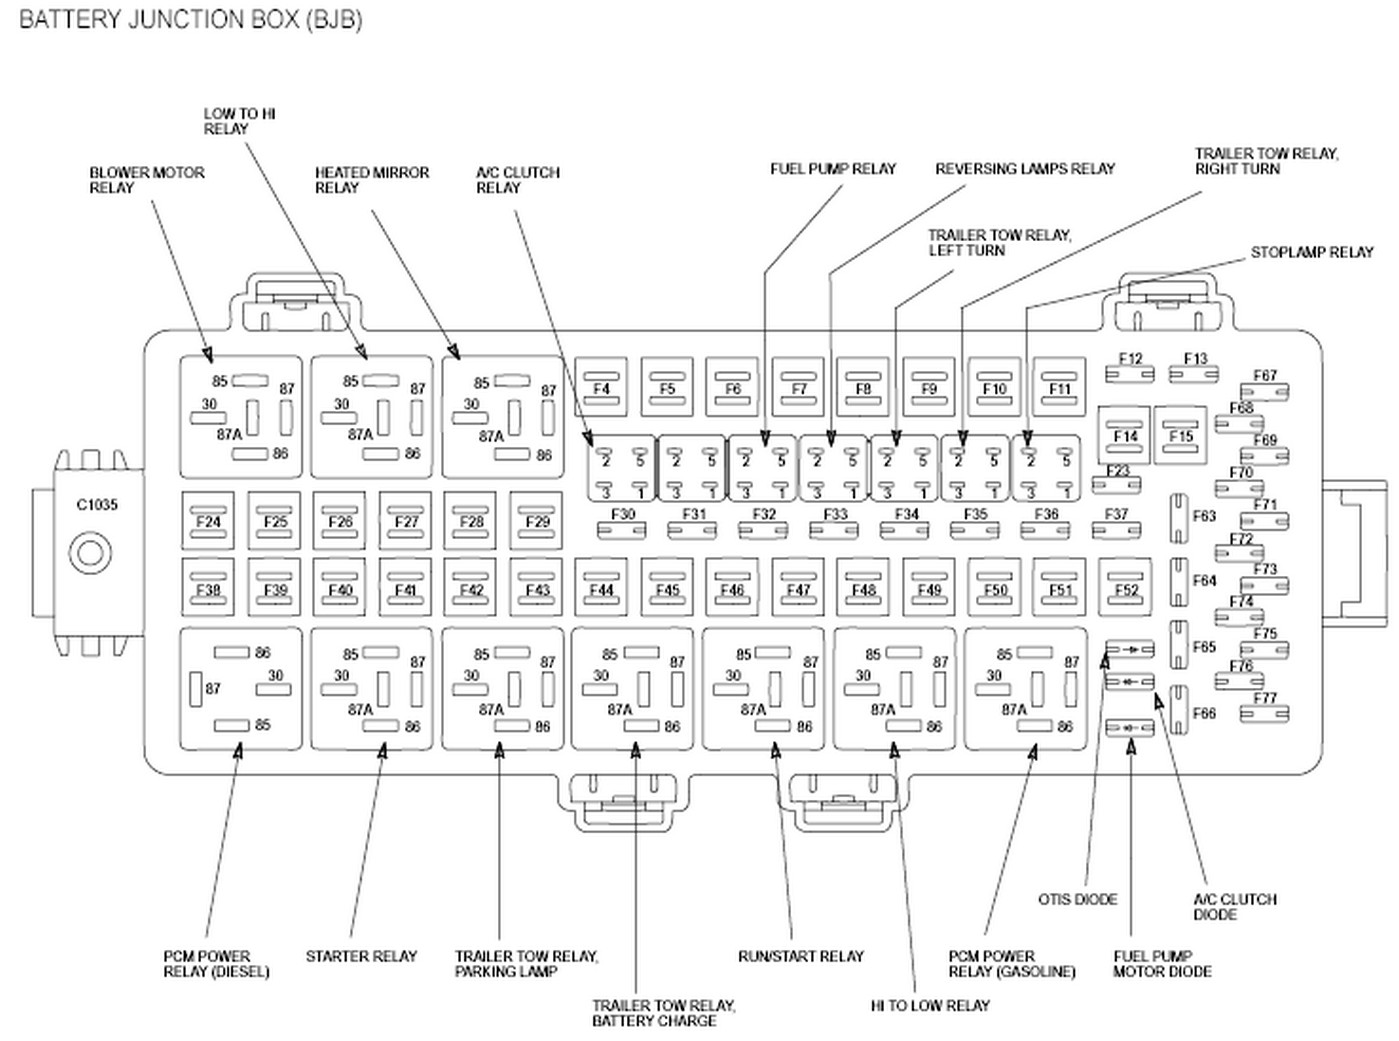 2007 F450 Fuse Box Diagram Manual Of Wiring On 1998 Mercedes E430 2008 Expedition Just Schematic Rh Lailamaed Co Uk